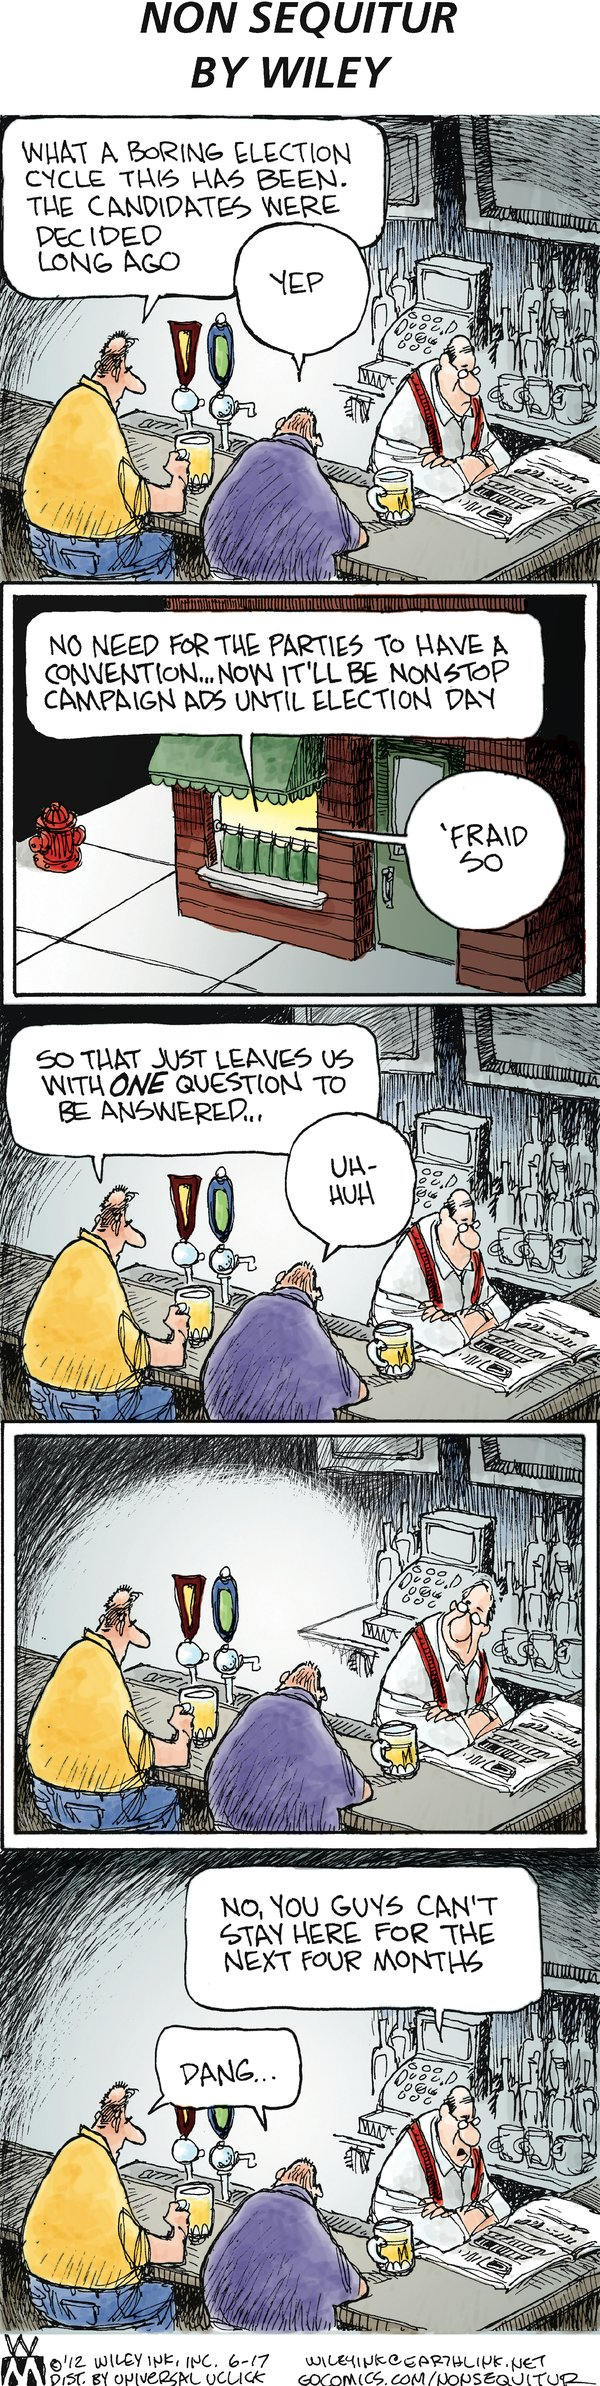 Non Sequitur Comic Strip for June 17, 2012